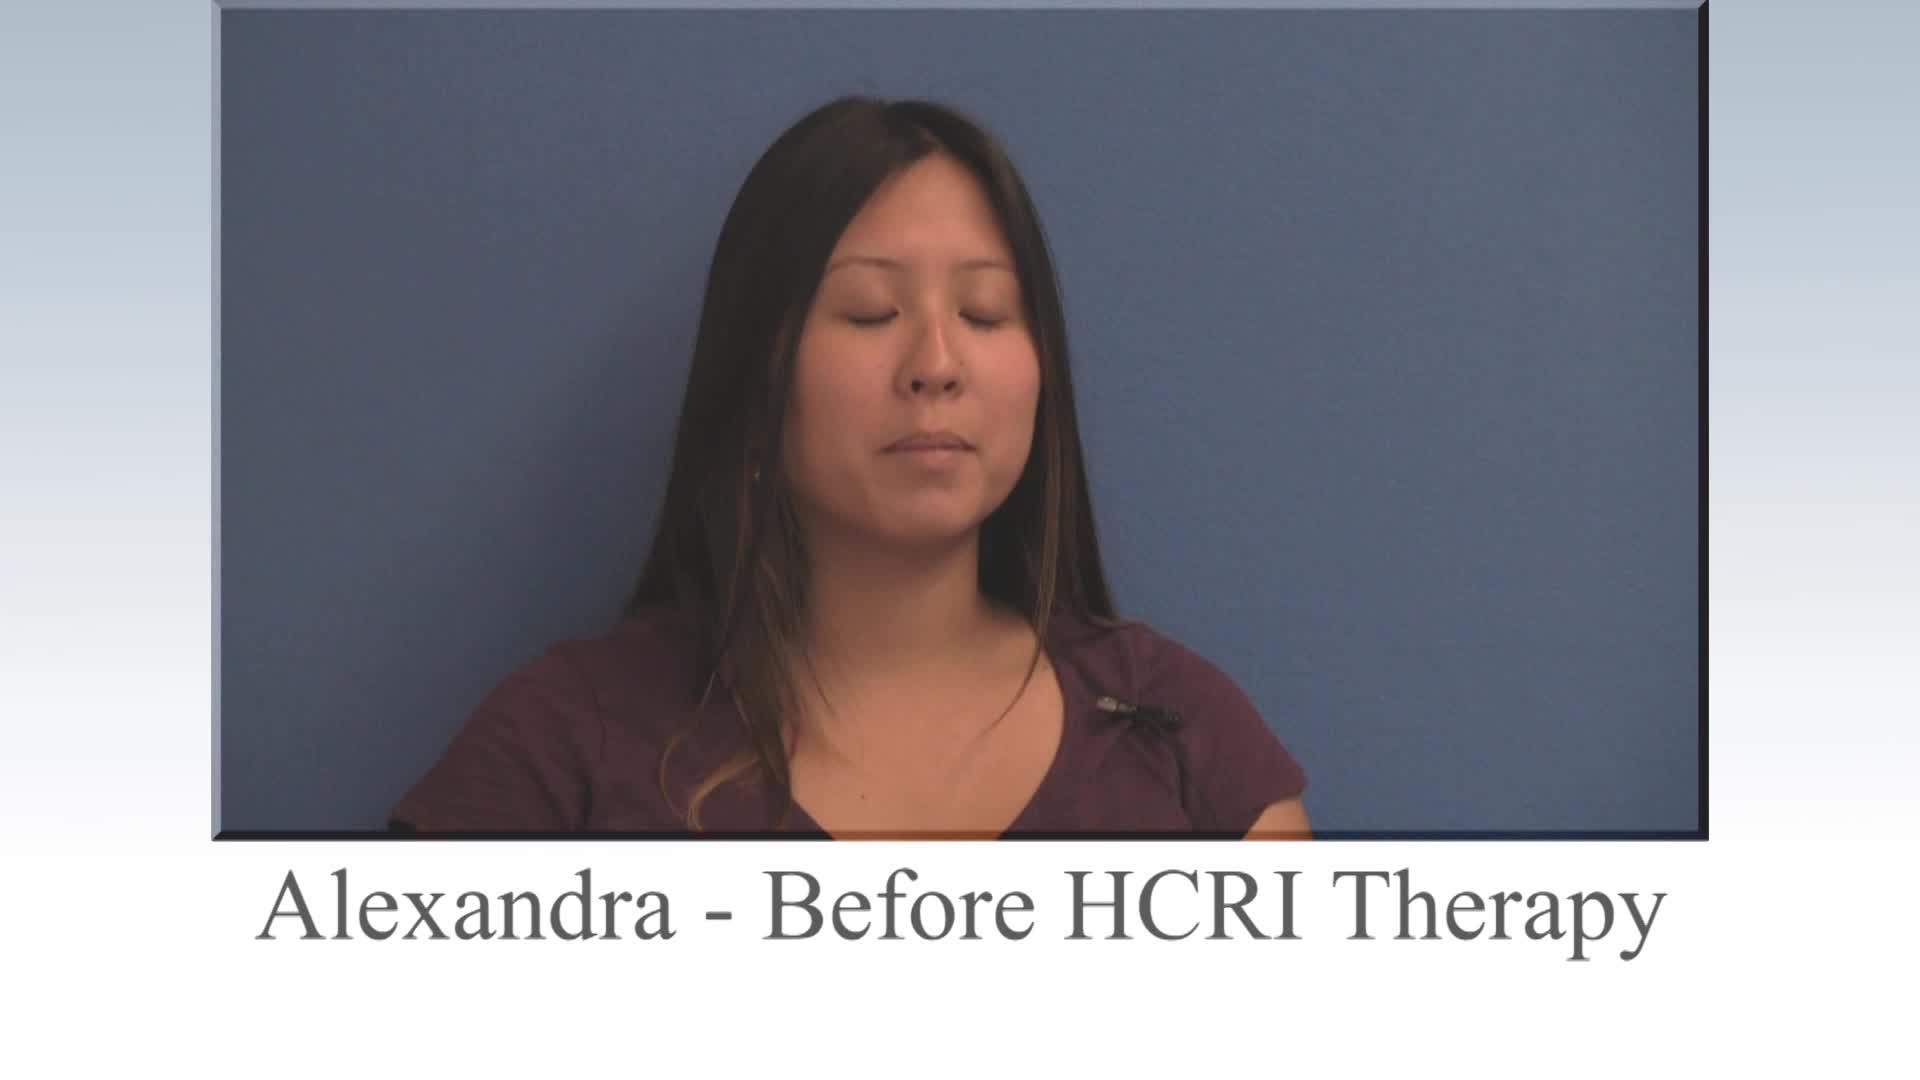 This video shows speech samples from three indivduals who stutter before and after attending the 12-day stuttering therapy program at non-profit Hollins Communications Research Institute (HCRI). To learn more about HCRI stuttering therapy, visit www.stuttering.org and/or contact HCRI at info@stuttering.org or 855-236-7032.